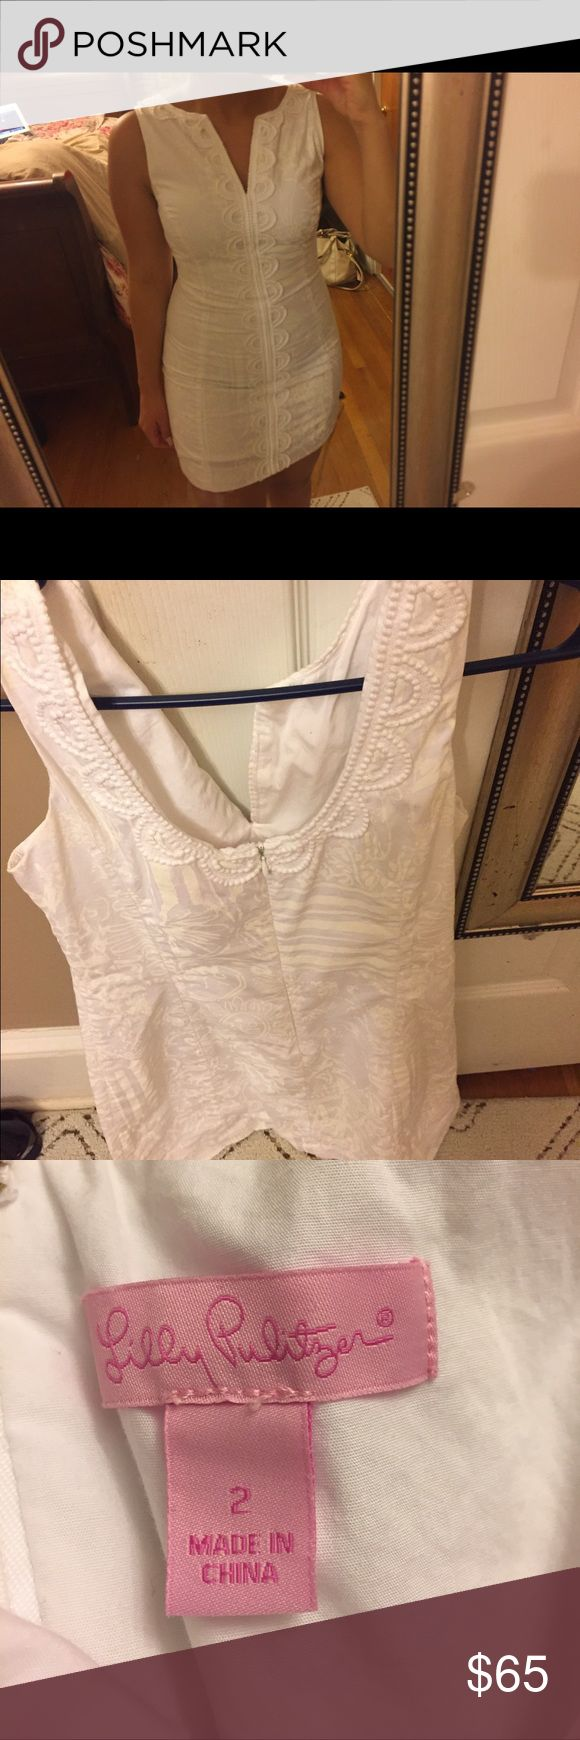 This is a lilly pulitzer white dress size 2 It was altered just a little, but still is a size 2. Make an offer!!! ❤️ Lilly Pulitzer Dresses Mini